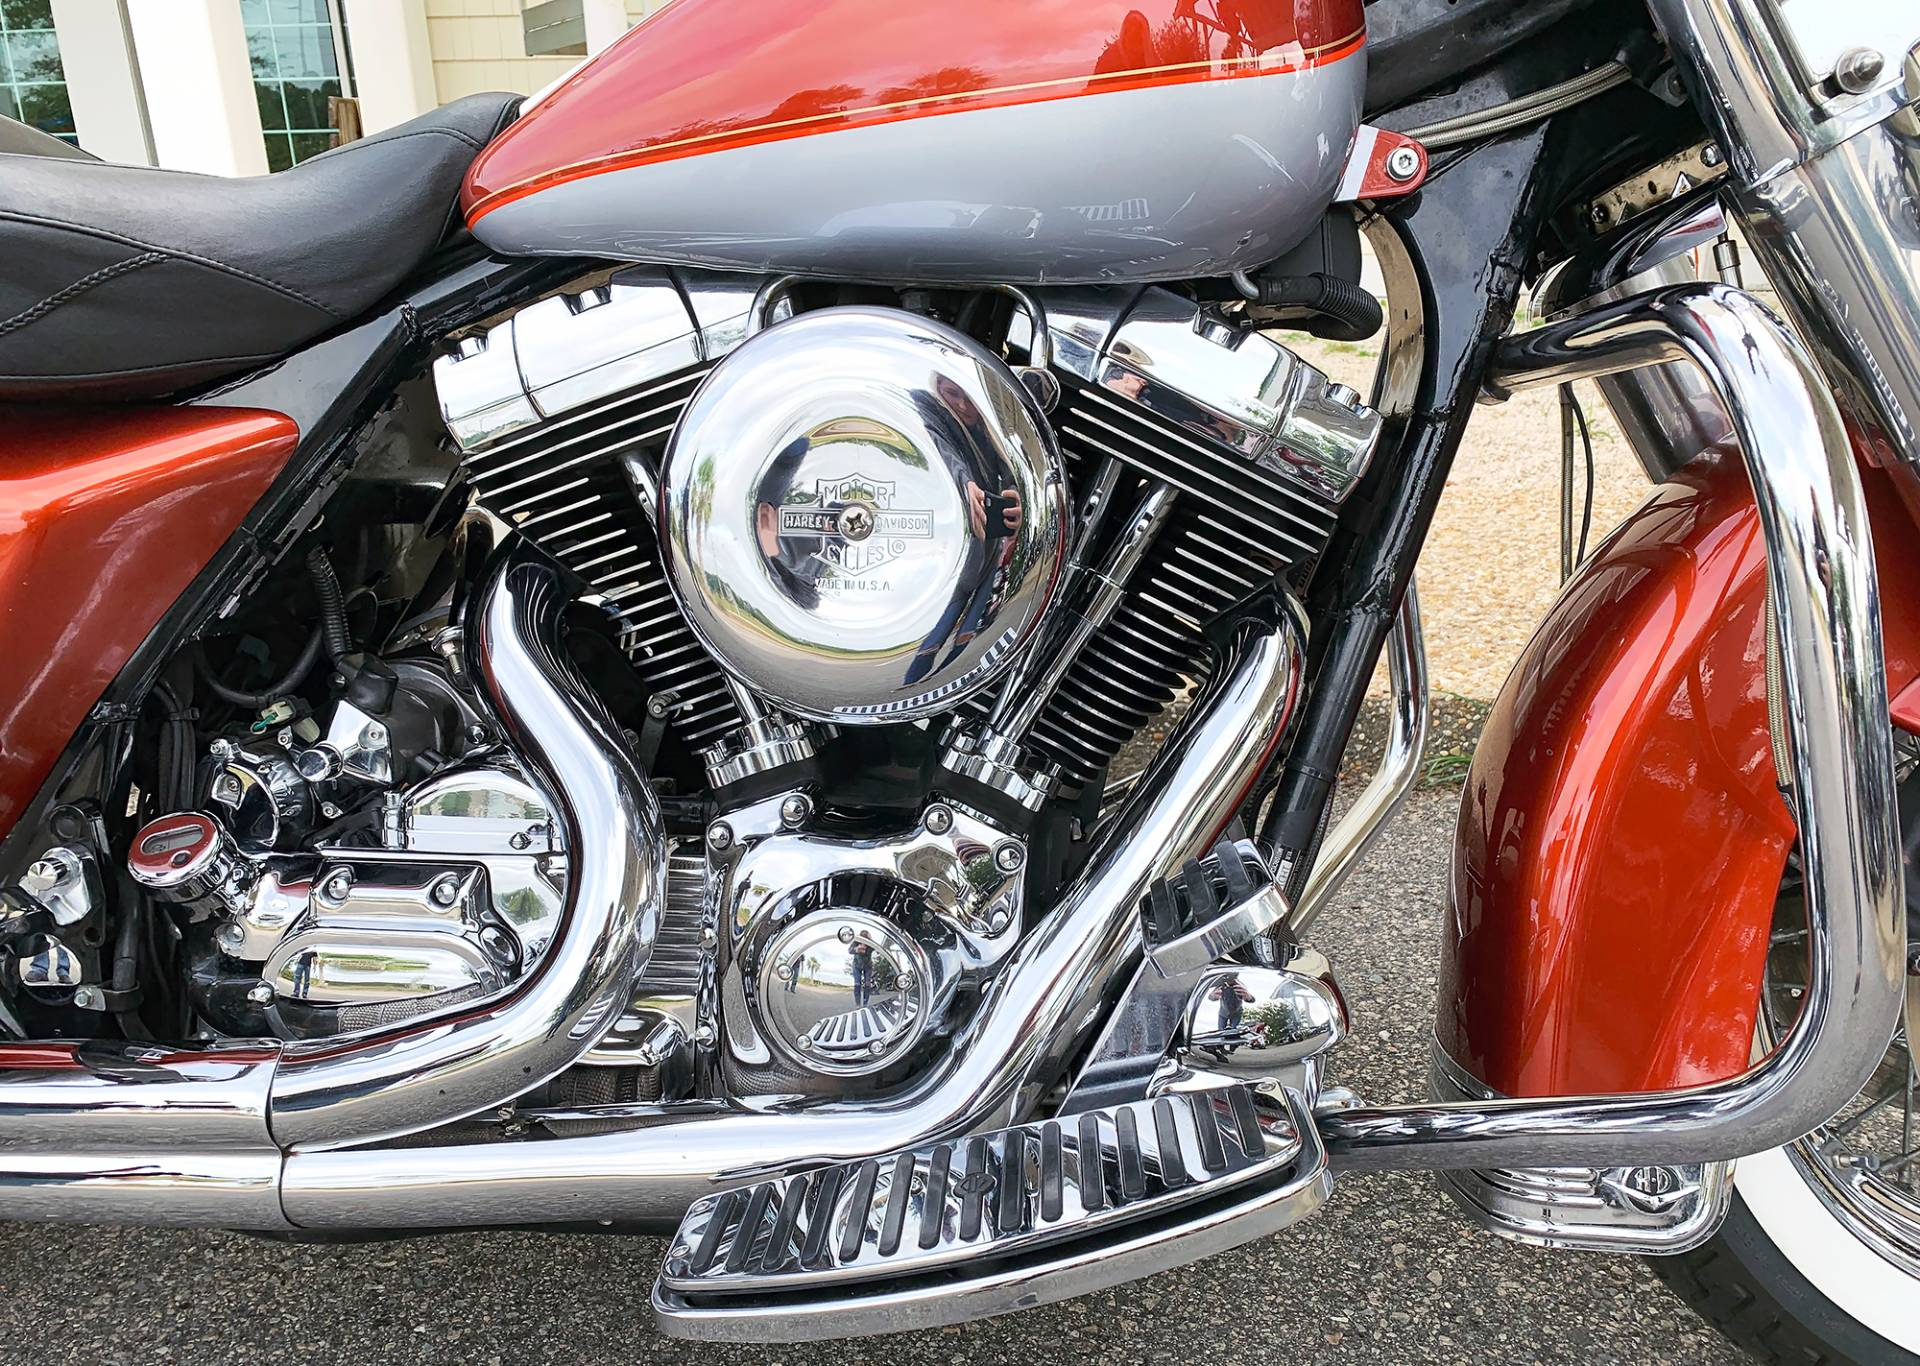 2000 Harley-Davidson Road King® Classic in Shallotte, North Carolina - Photo 6